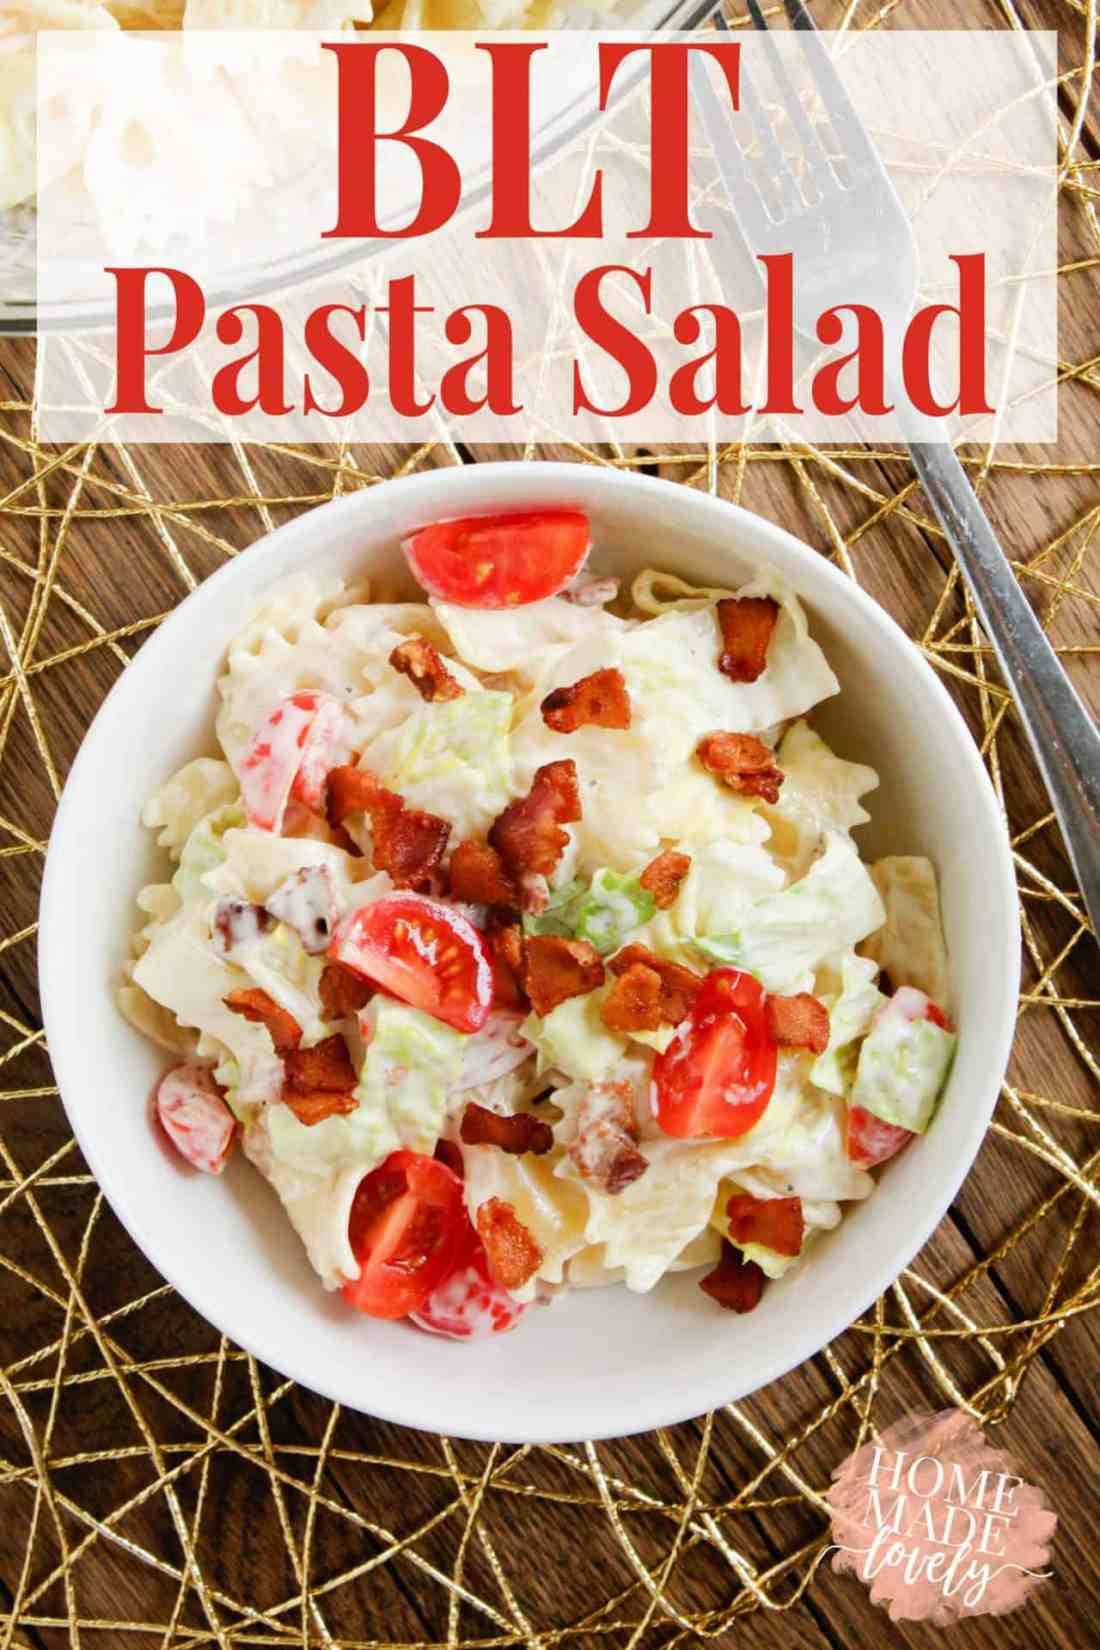 This BLT Pasta Salad recipe combines the flavors of a BLT sandwich and classic pasta salad into one delicious bowlful of yumminess!